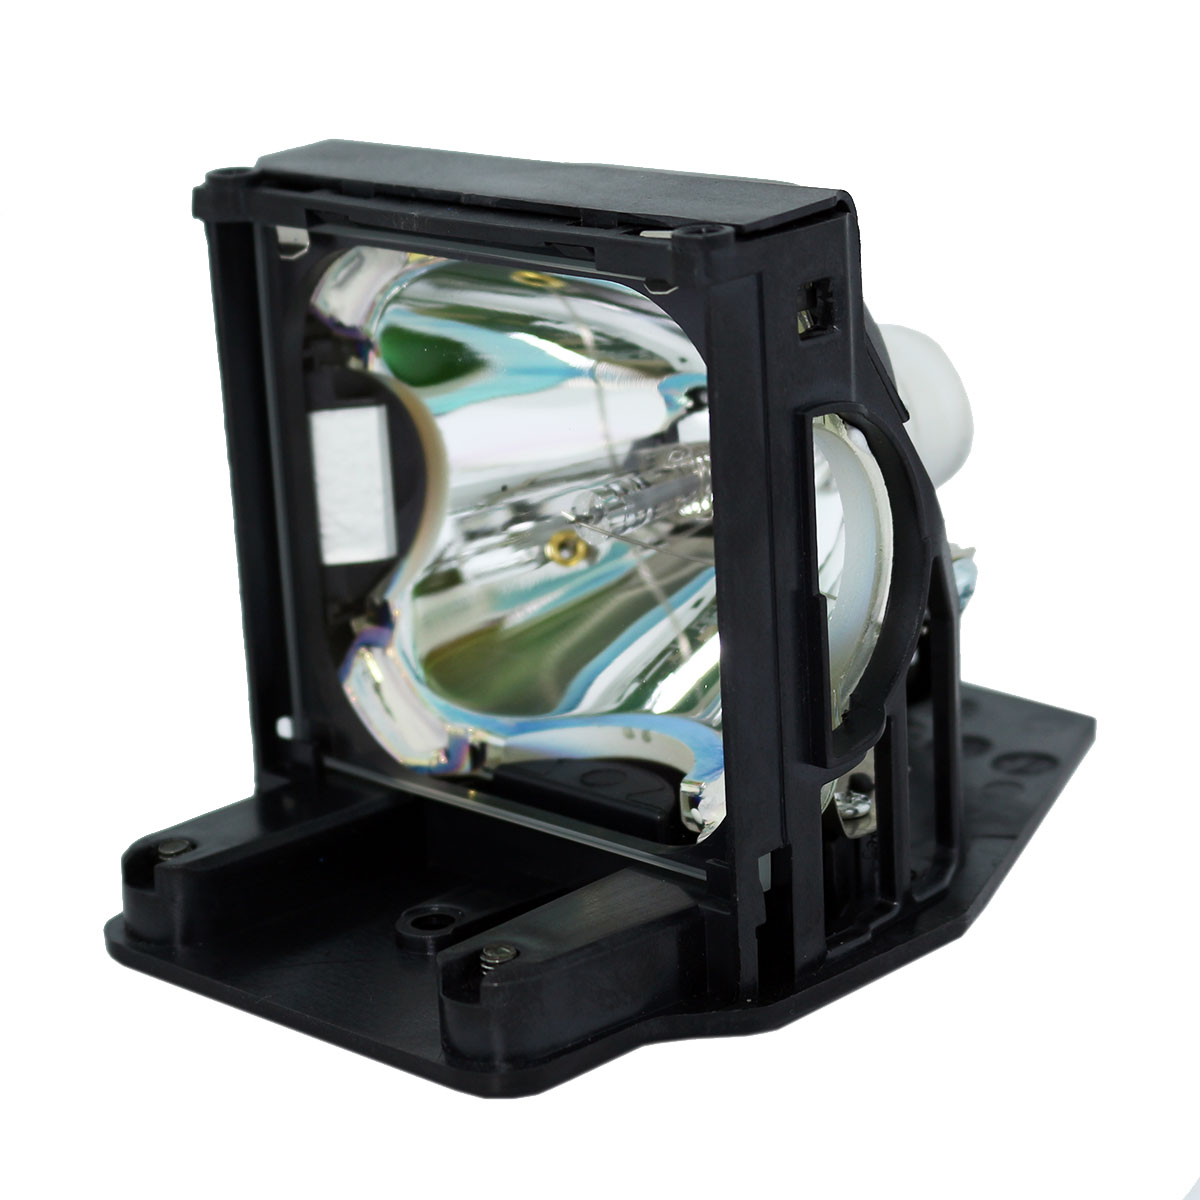 Infocus Sp Lamp 012 Projector Lamp New Uhp Bulb